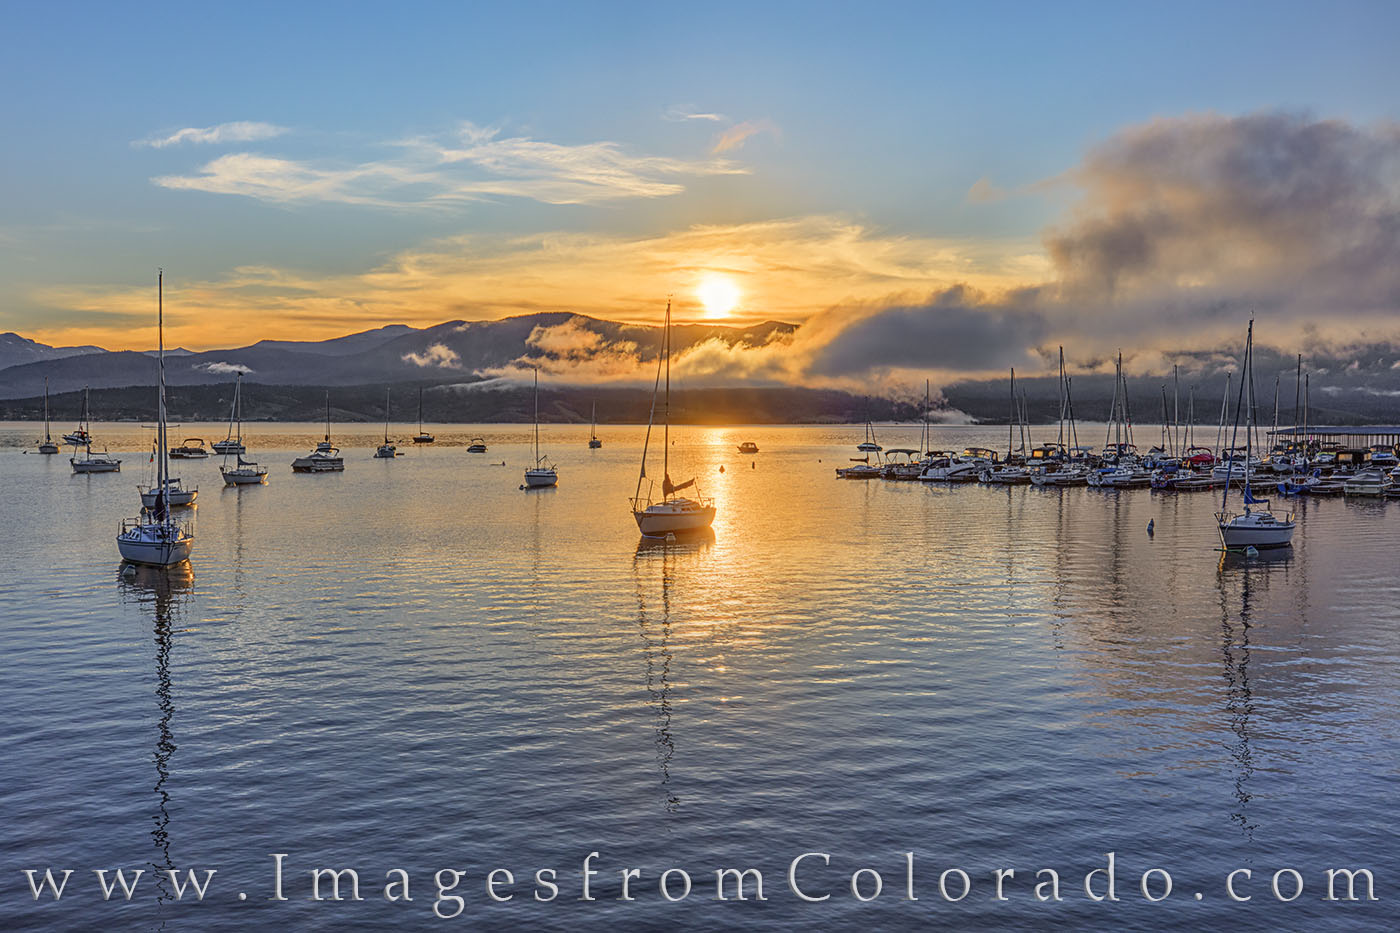 grand lake, lake granby, highway 34, rocky mountains, sunrise, summer, morning, boats, harbor, peace, photo